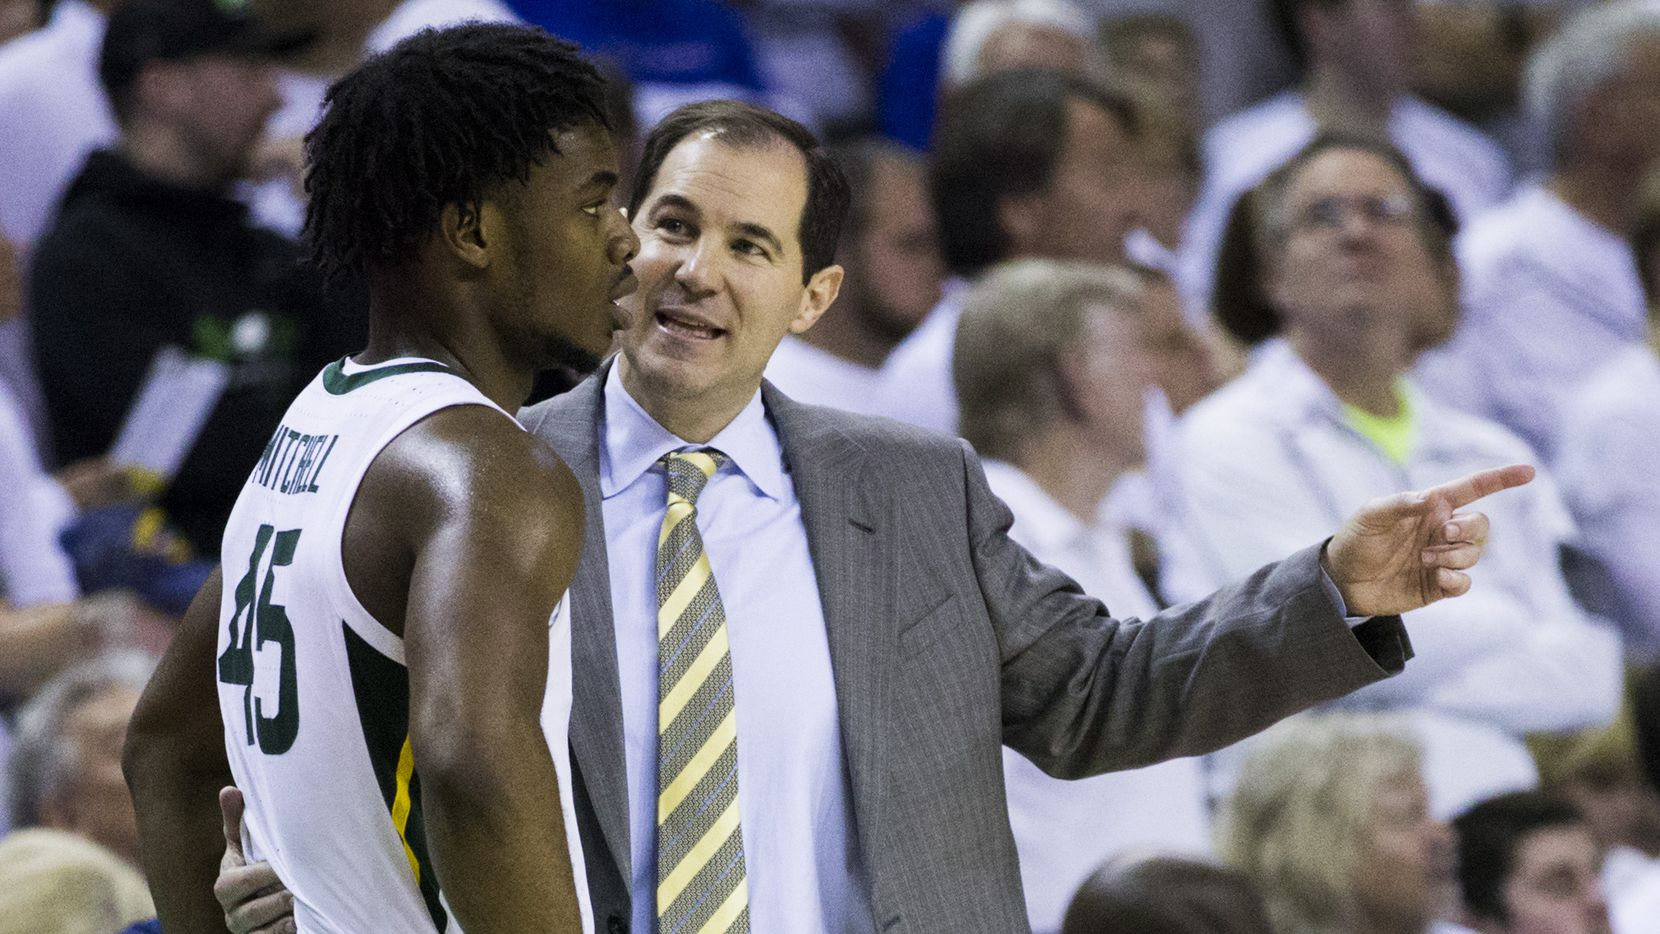 Baylor Bears guard Davion Mitchell (45) talks with head coach Scott Drew during the second half of an NCAA men's basketball game between Baylor University and Kansas University on Saturday, February 22, 2020 at Ferrell Center on the Baylor University Campus in Waco.